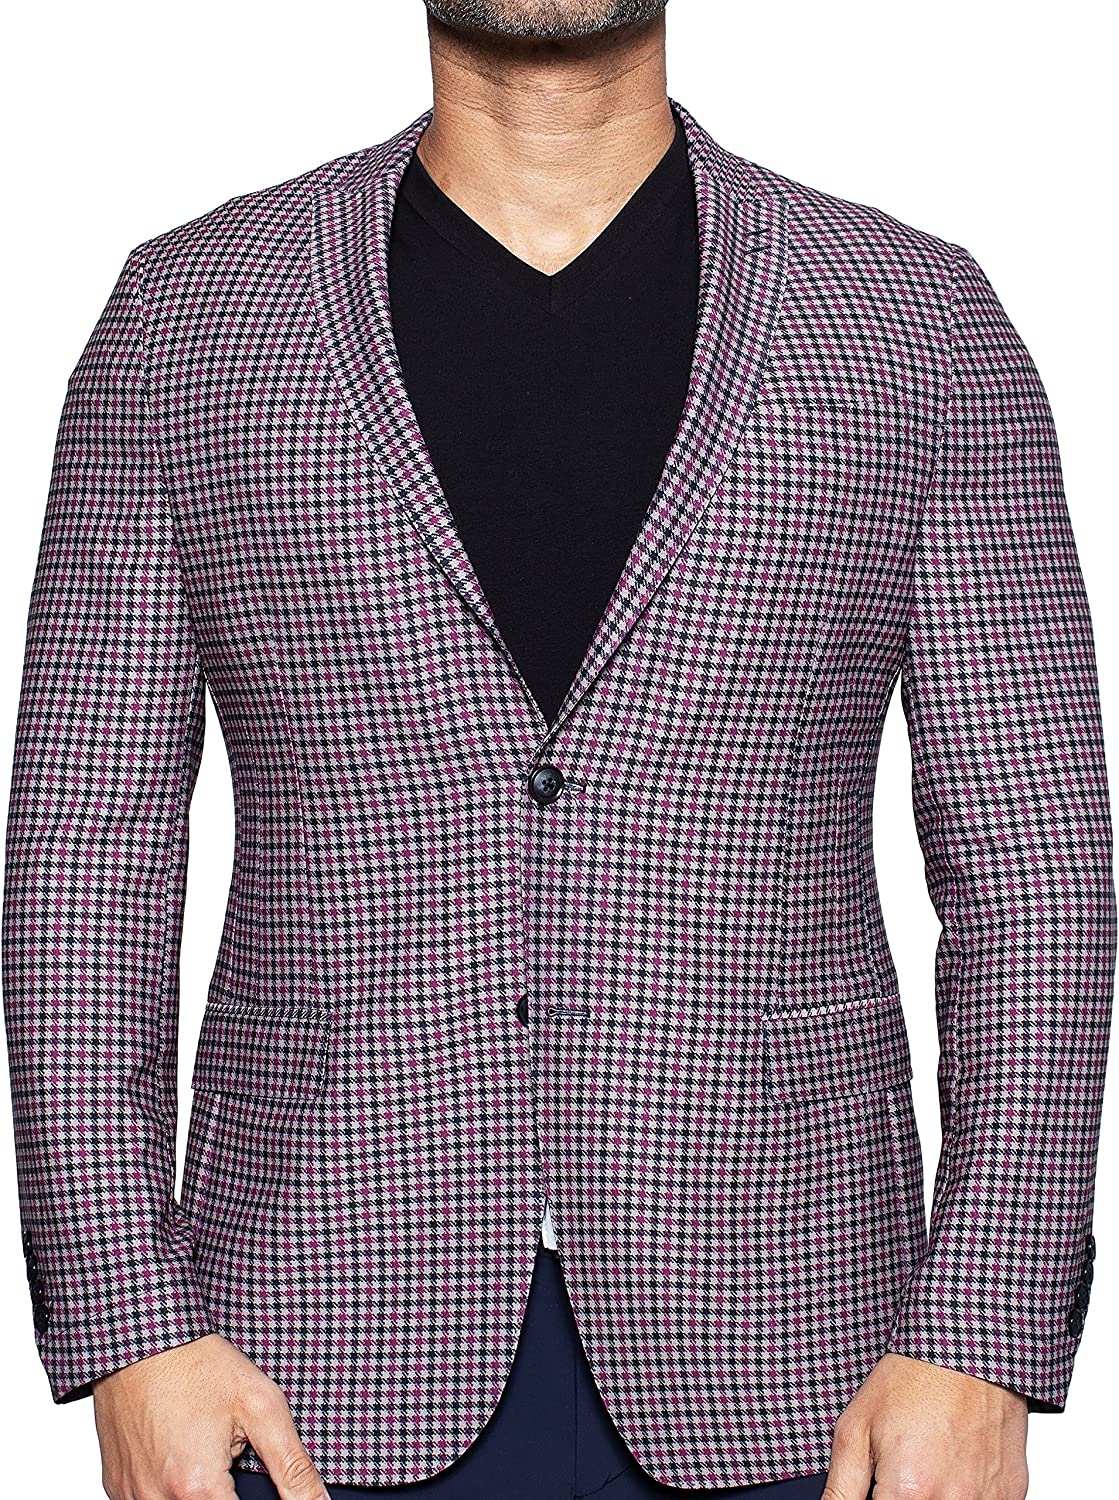 Maceoo Mens Designer Blazer - Night Out Stylish Sportswear - Unconstructed Houndstooth Blue - Tailored Fit